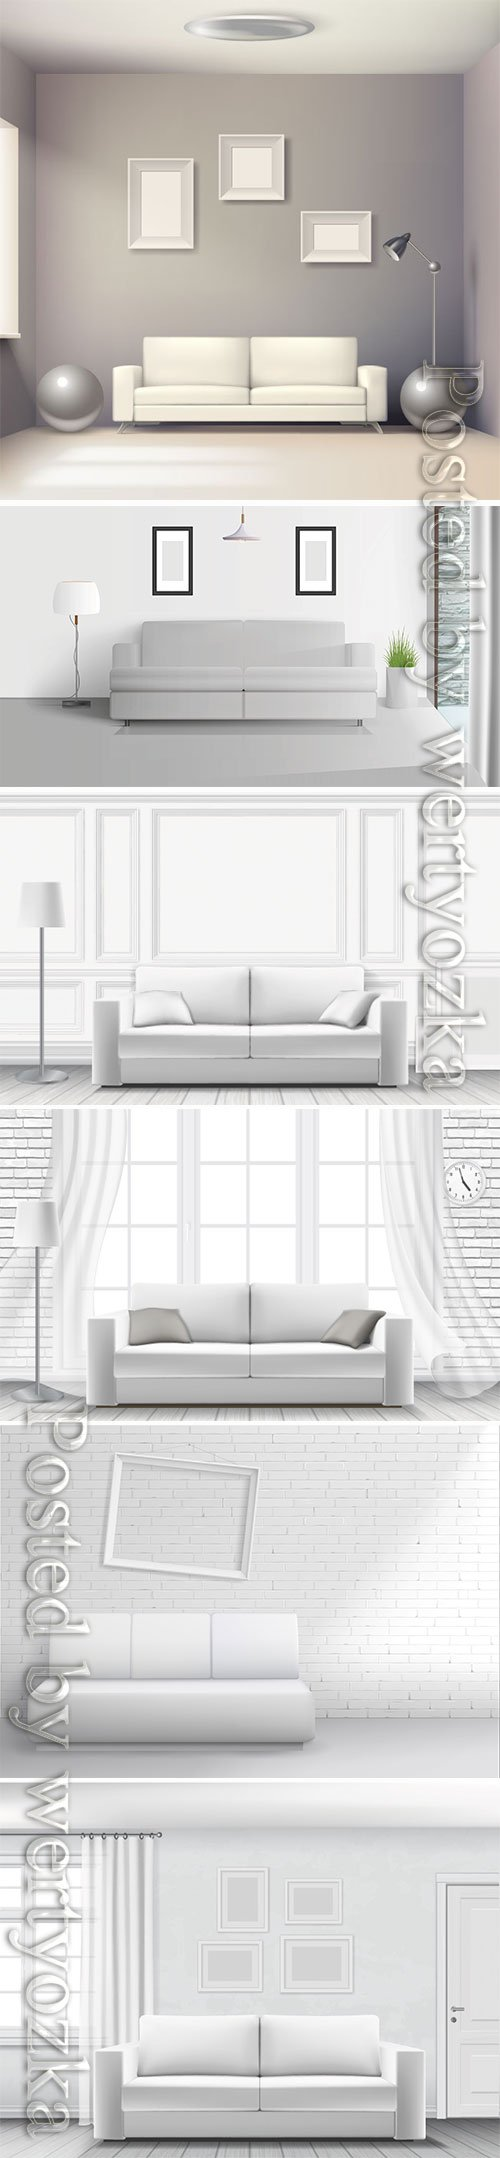 Realistic home interior vector template # 4